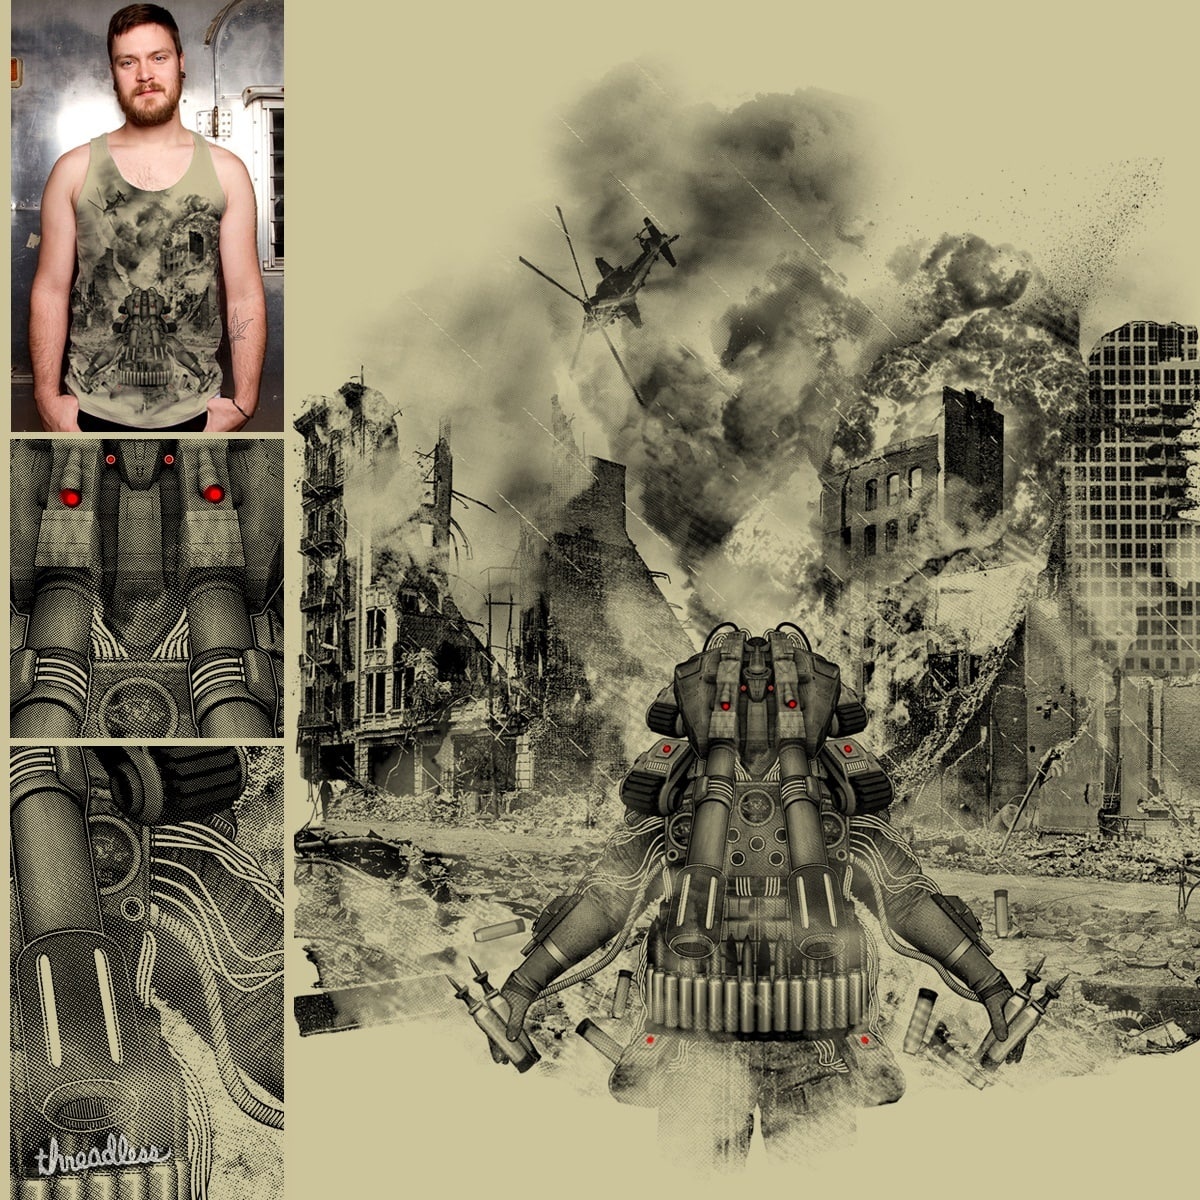 THE TANK by FRANZSYD CEBU on Threadless